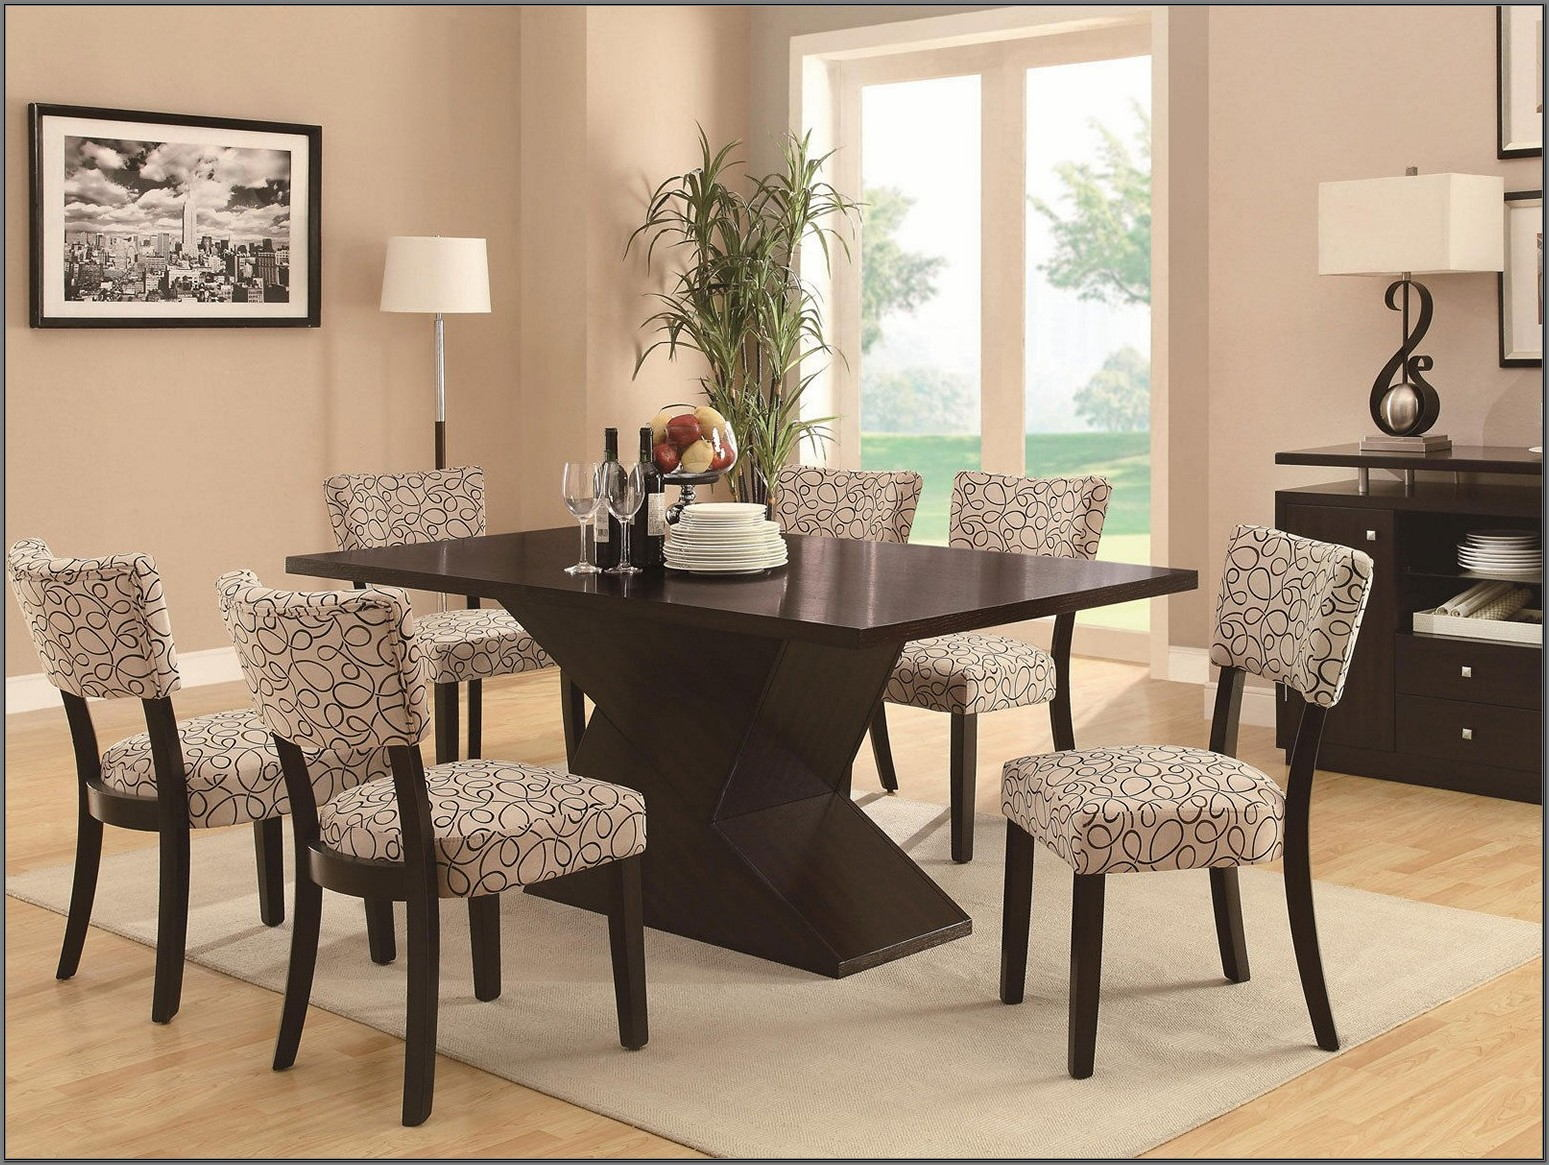 Canadel Dining Room Table And Chairs